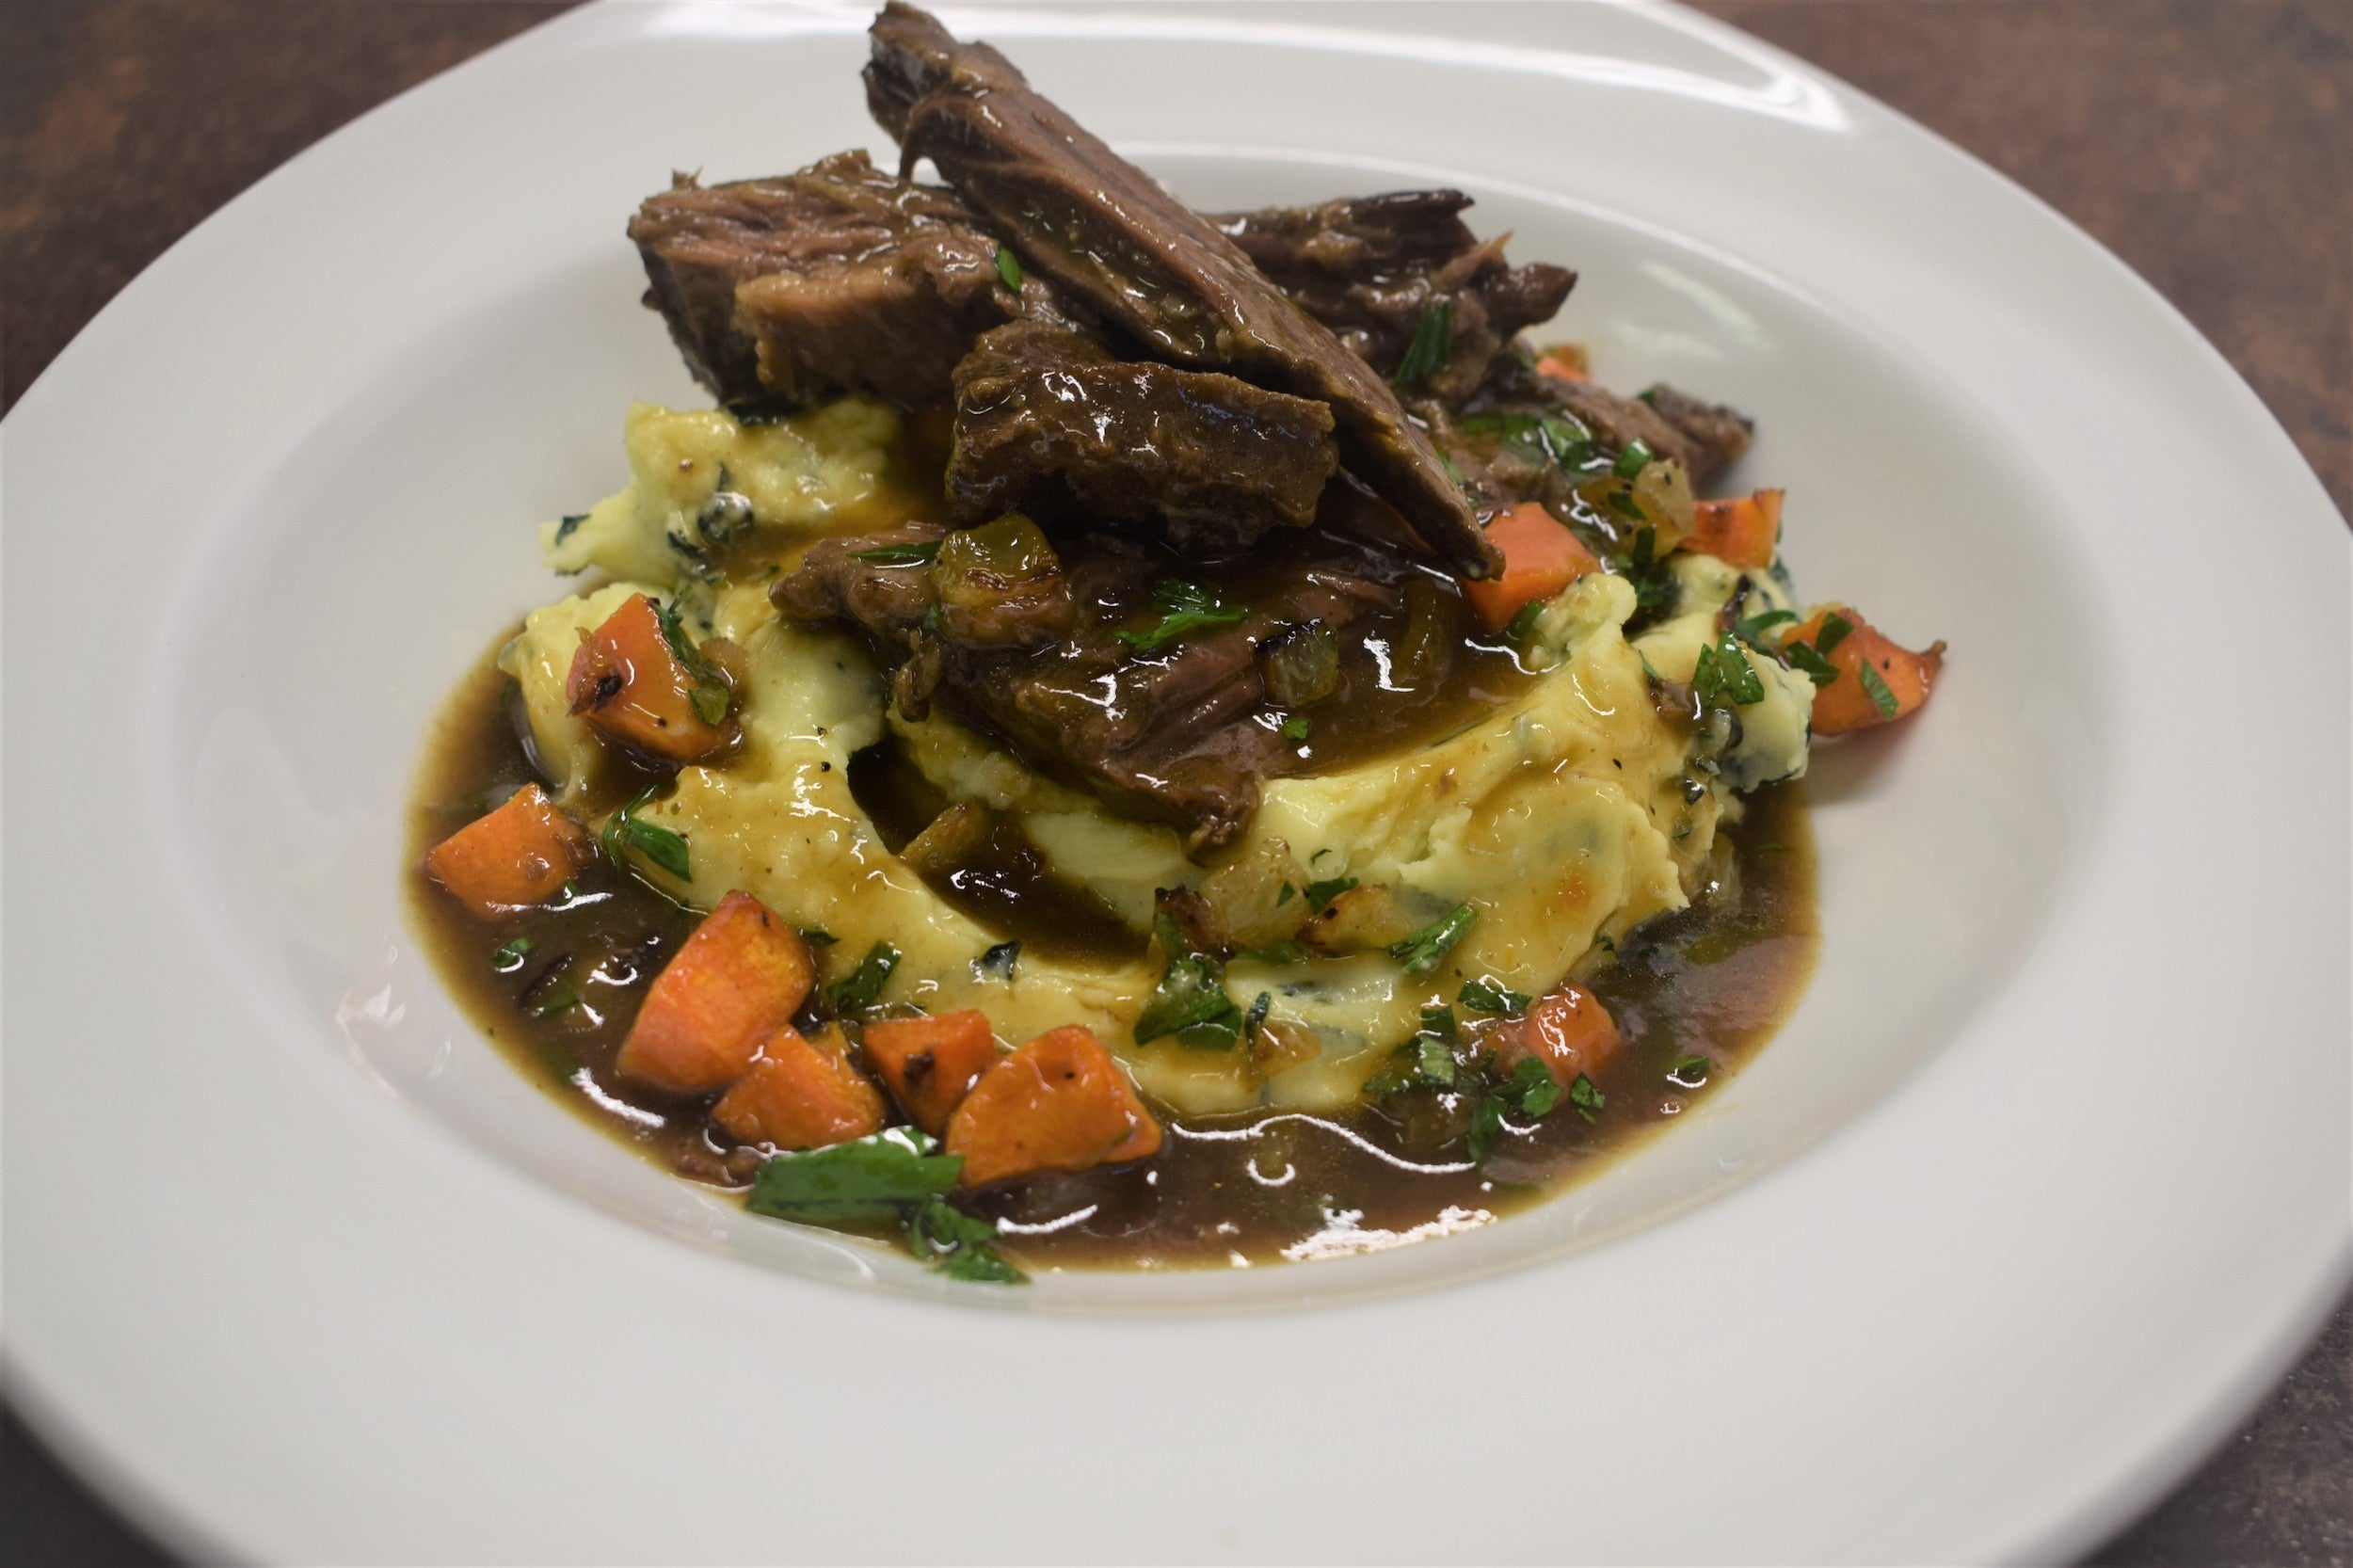 Slow cooked beef brisket with colcannon potatoes